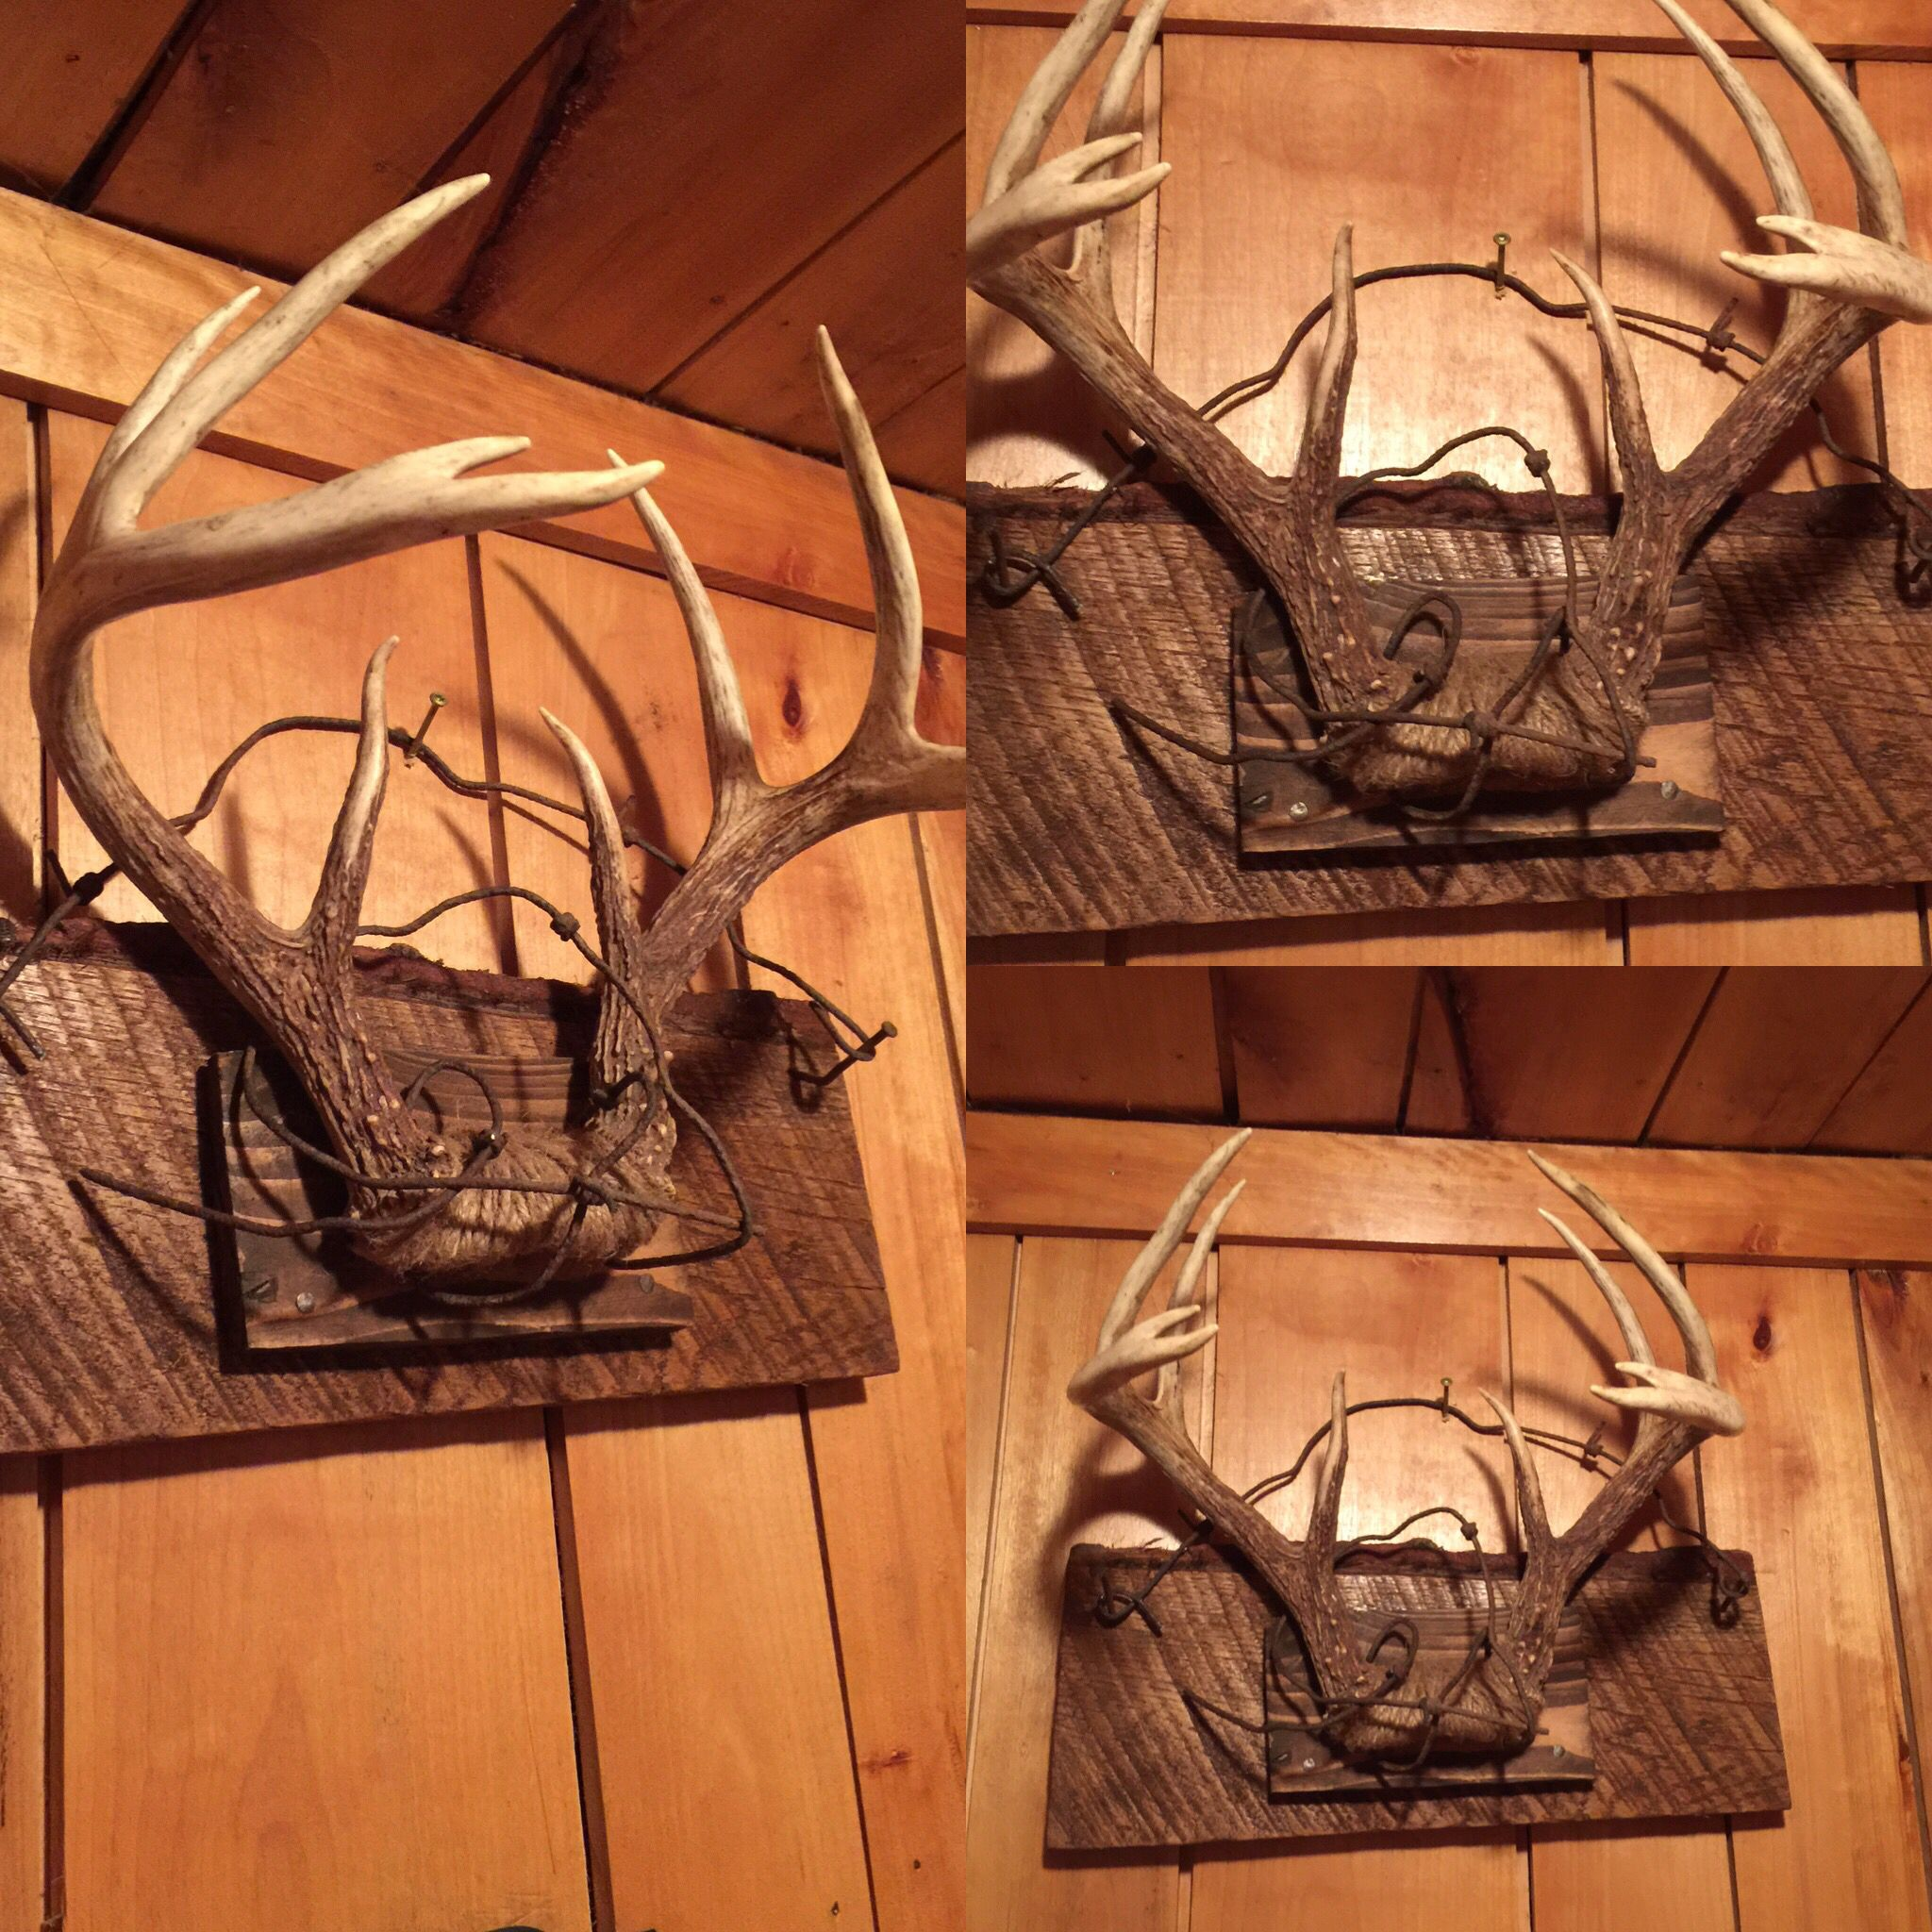 Ruff Lumber Antler Mount Jupe Rope Old Fence Easy Way To Make Rustic Pretty And Cheap Antler Mount Diy Deer Antler Decor Deer Hunting Decor Antlers Decor